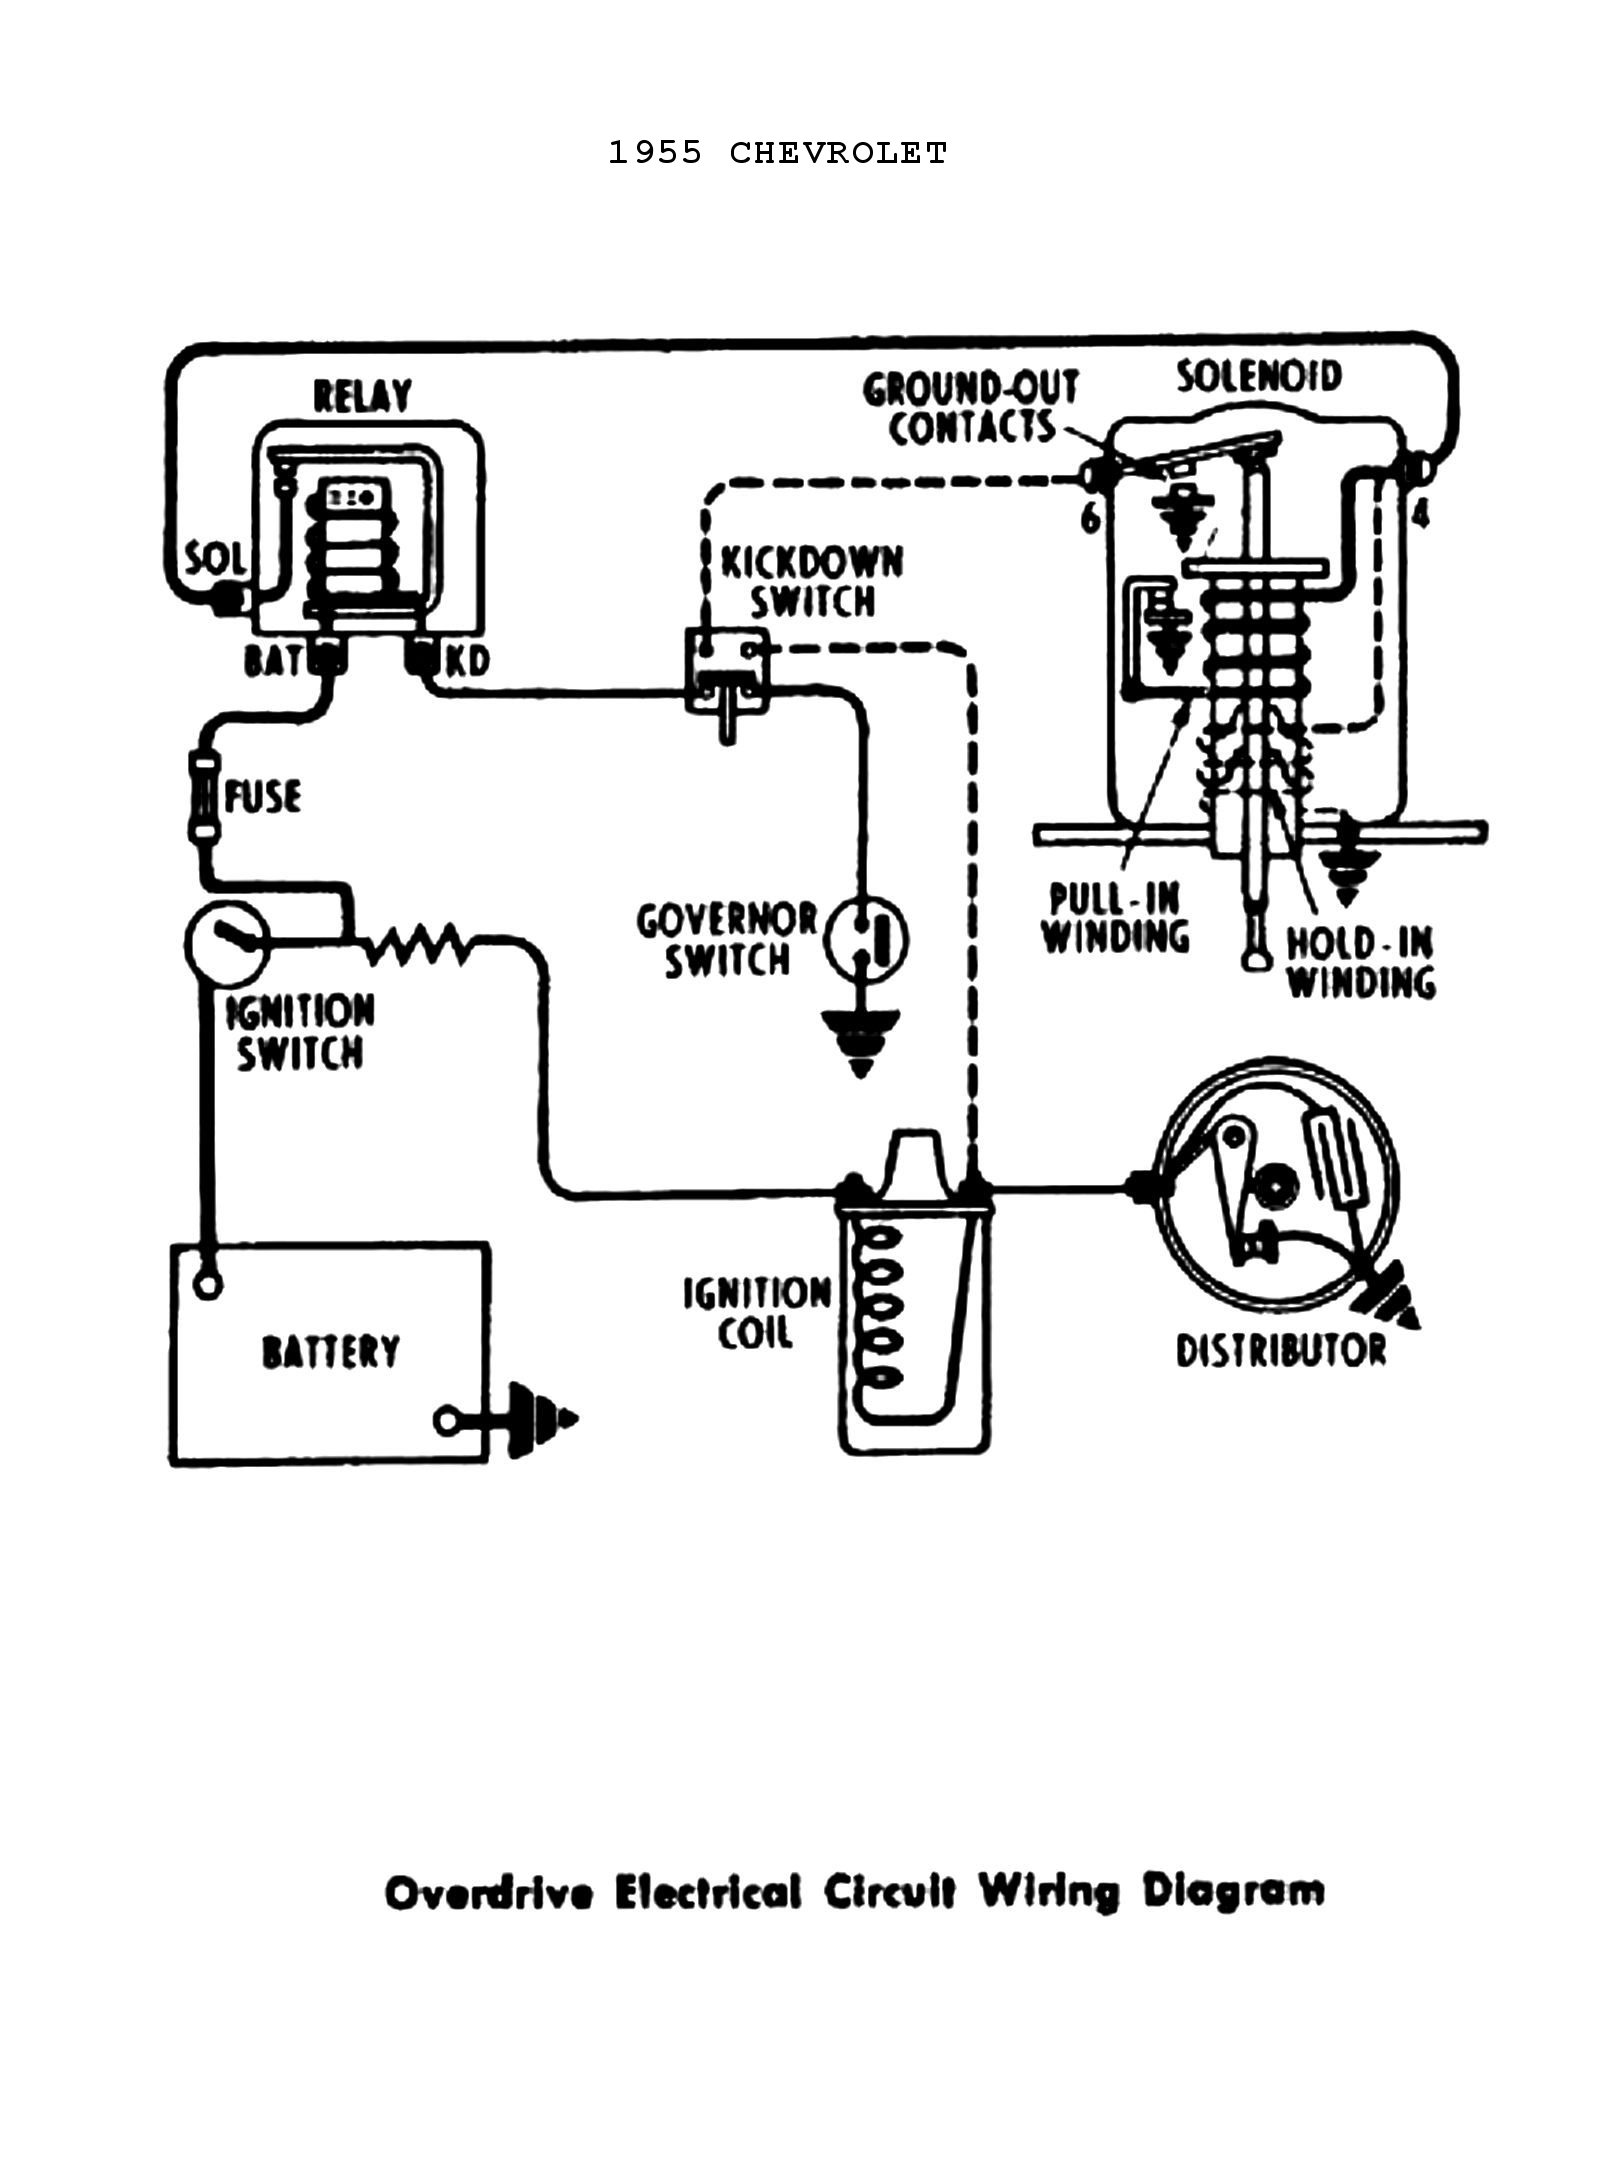 dist wiring diagram chevy - 74 vw bug wiring diagram for wiring diagram  schematics  wiring diagram schematics